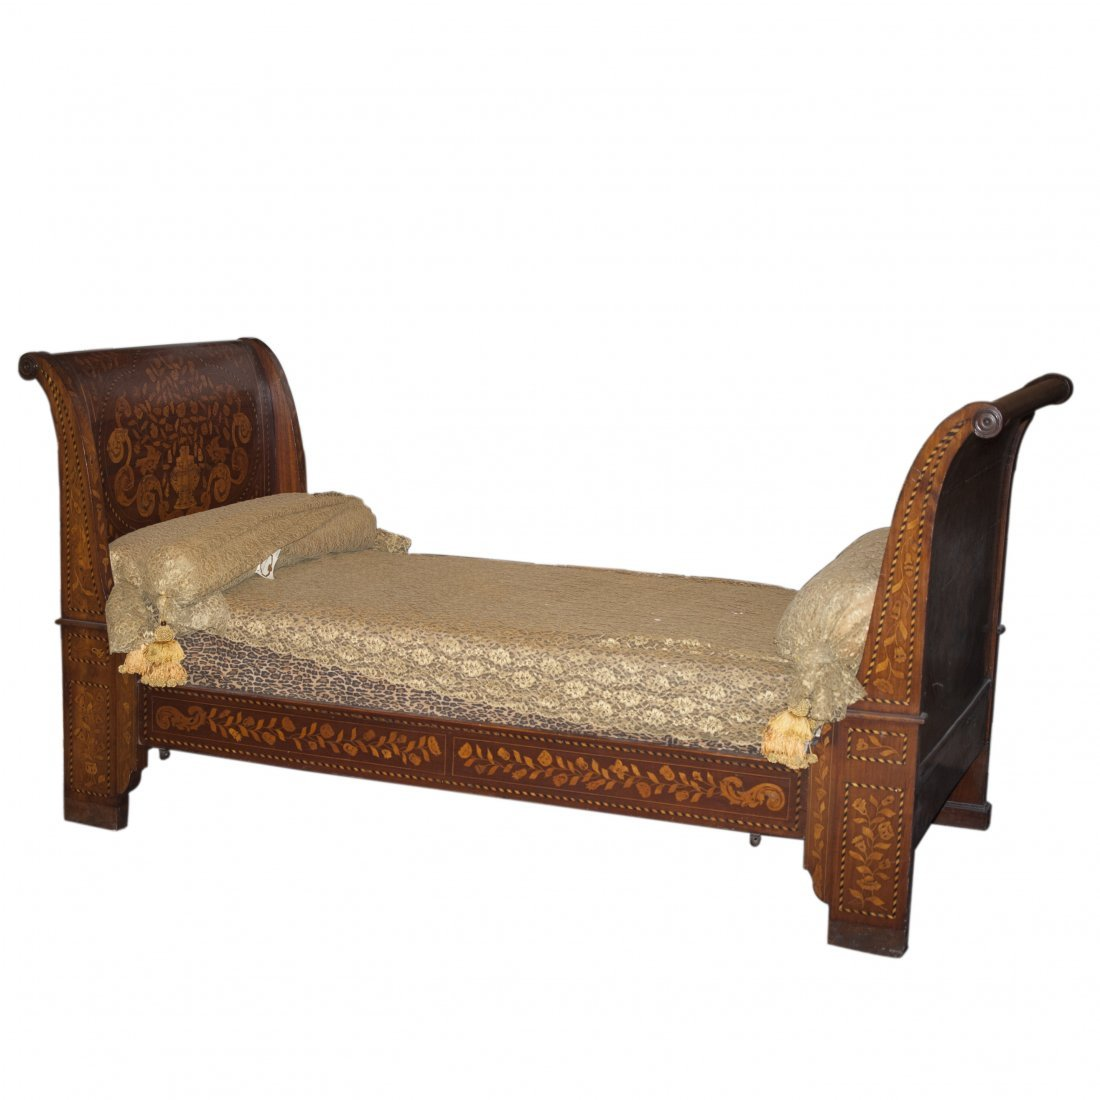 Antique Inlaid Wood Day Bed